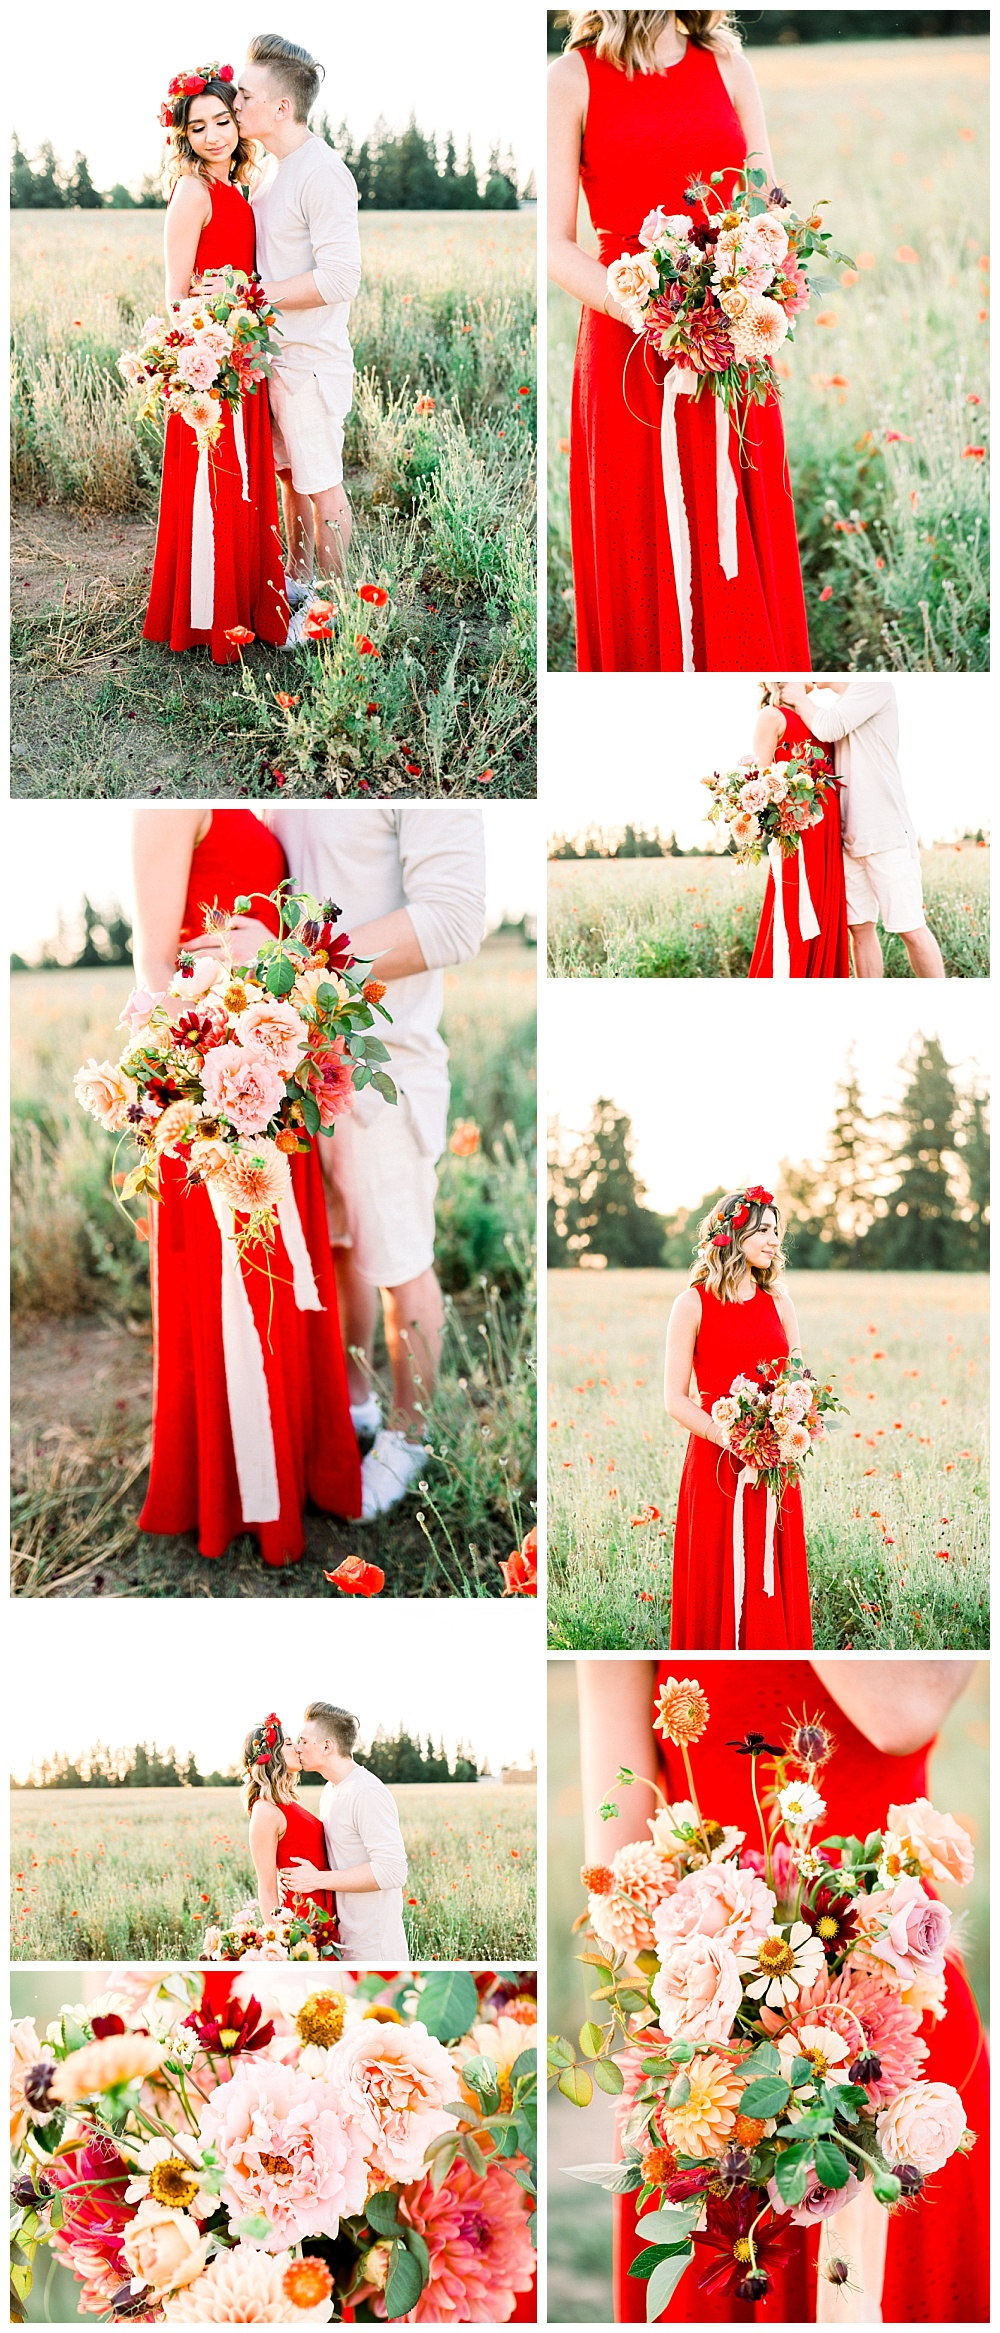 engagement session with bright red dress in rural oregon flower fields outside of Portland.